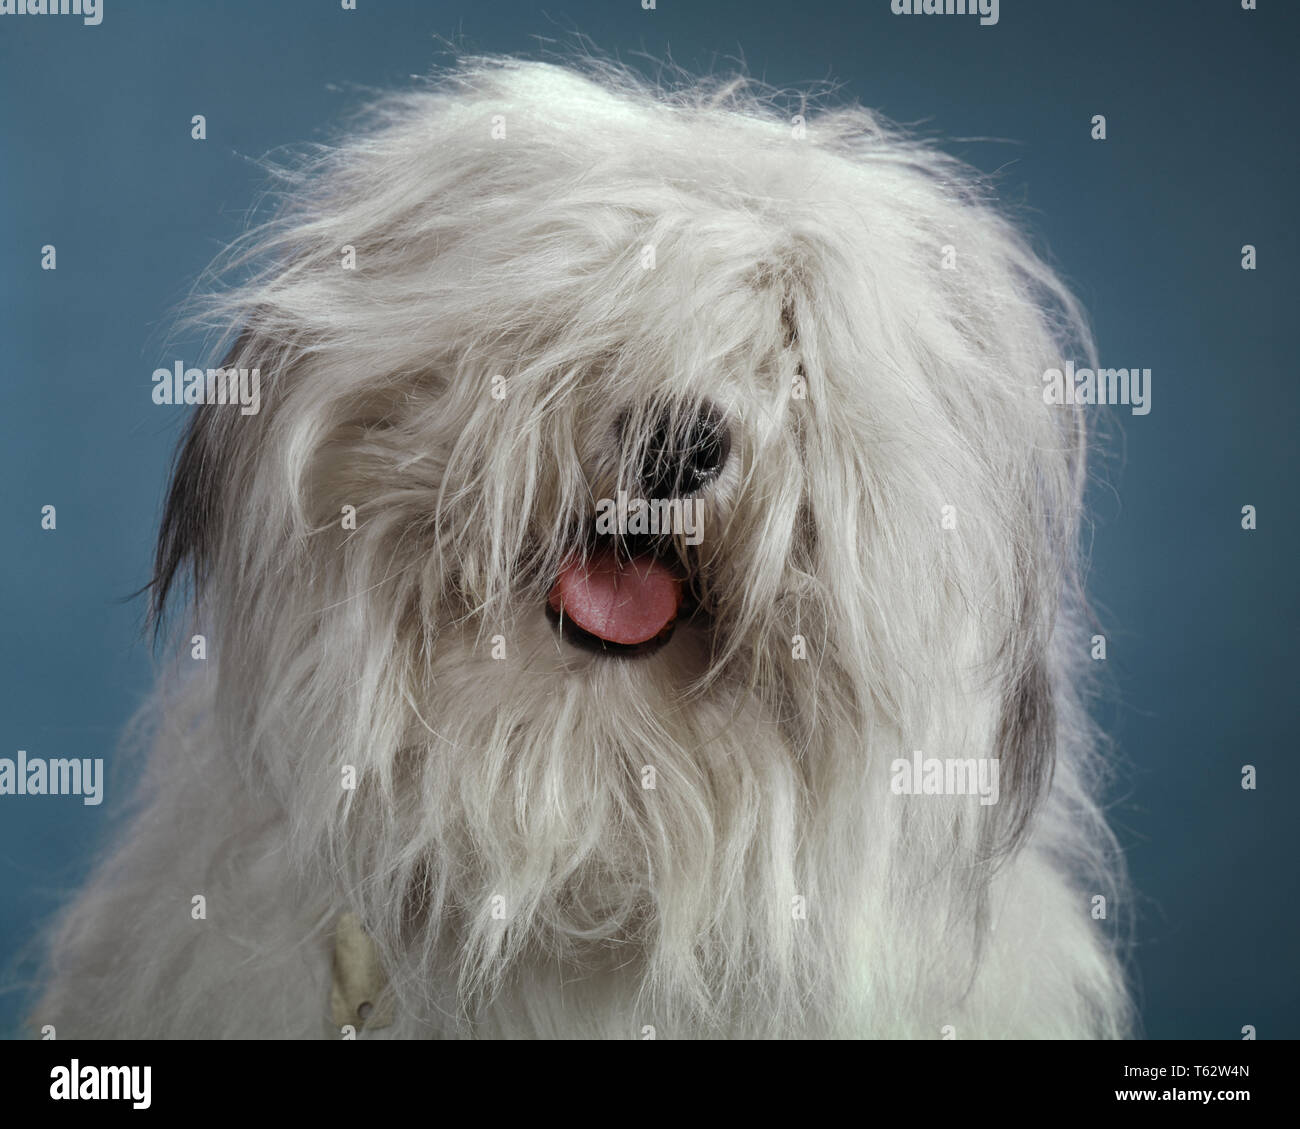 1960s FUNNY HAIRY MESSY MOP HEAD OF BEARDED COLLIE SHEEPDOG PINK TONGUE AND TIP OF BLACK NOSE ARE ALL THAT IS VISIBLE - kd1675 HAR001 HARS SHEPHERDS USED CONCEPTUAL BREED COMPANION FRIENDLY POPULAR STYLISH TIP SHAGGY VISIBLE BOUNCY CANINE GRAY LEVEL LOVABLE MAMMAL HAIRY HAR001 OLD FASHIONED - Stock Image